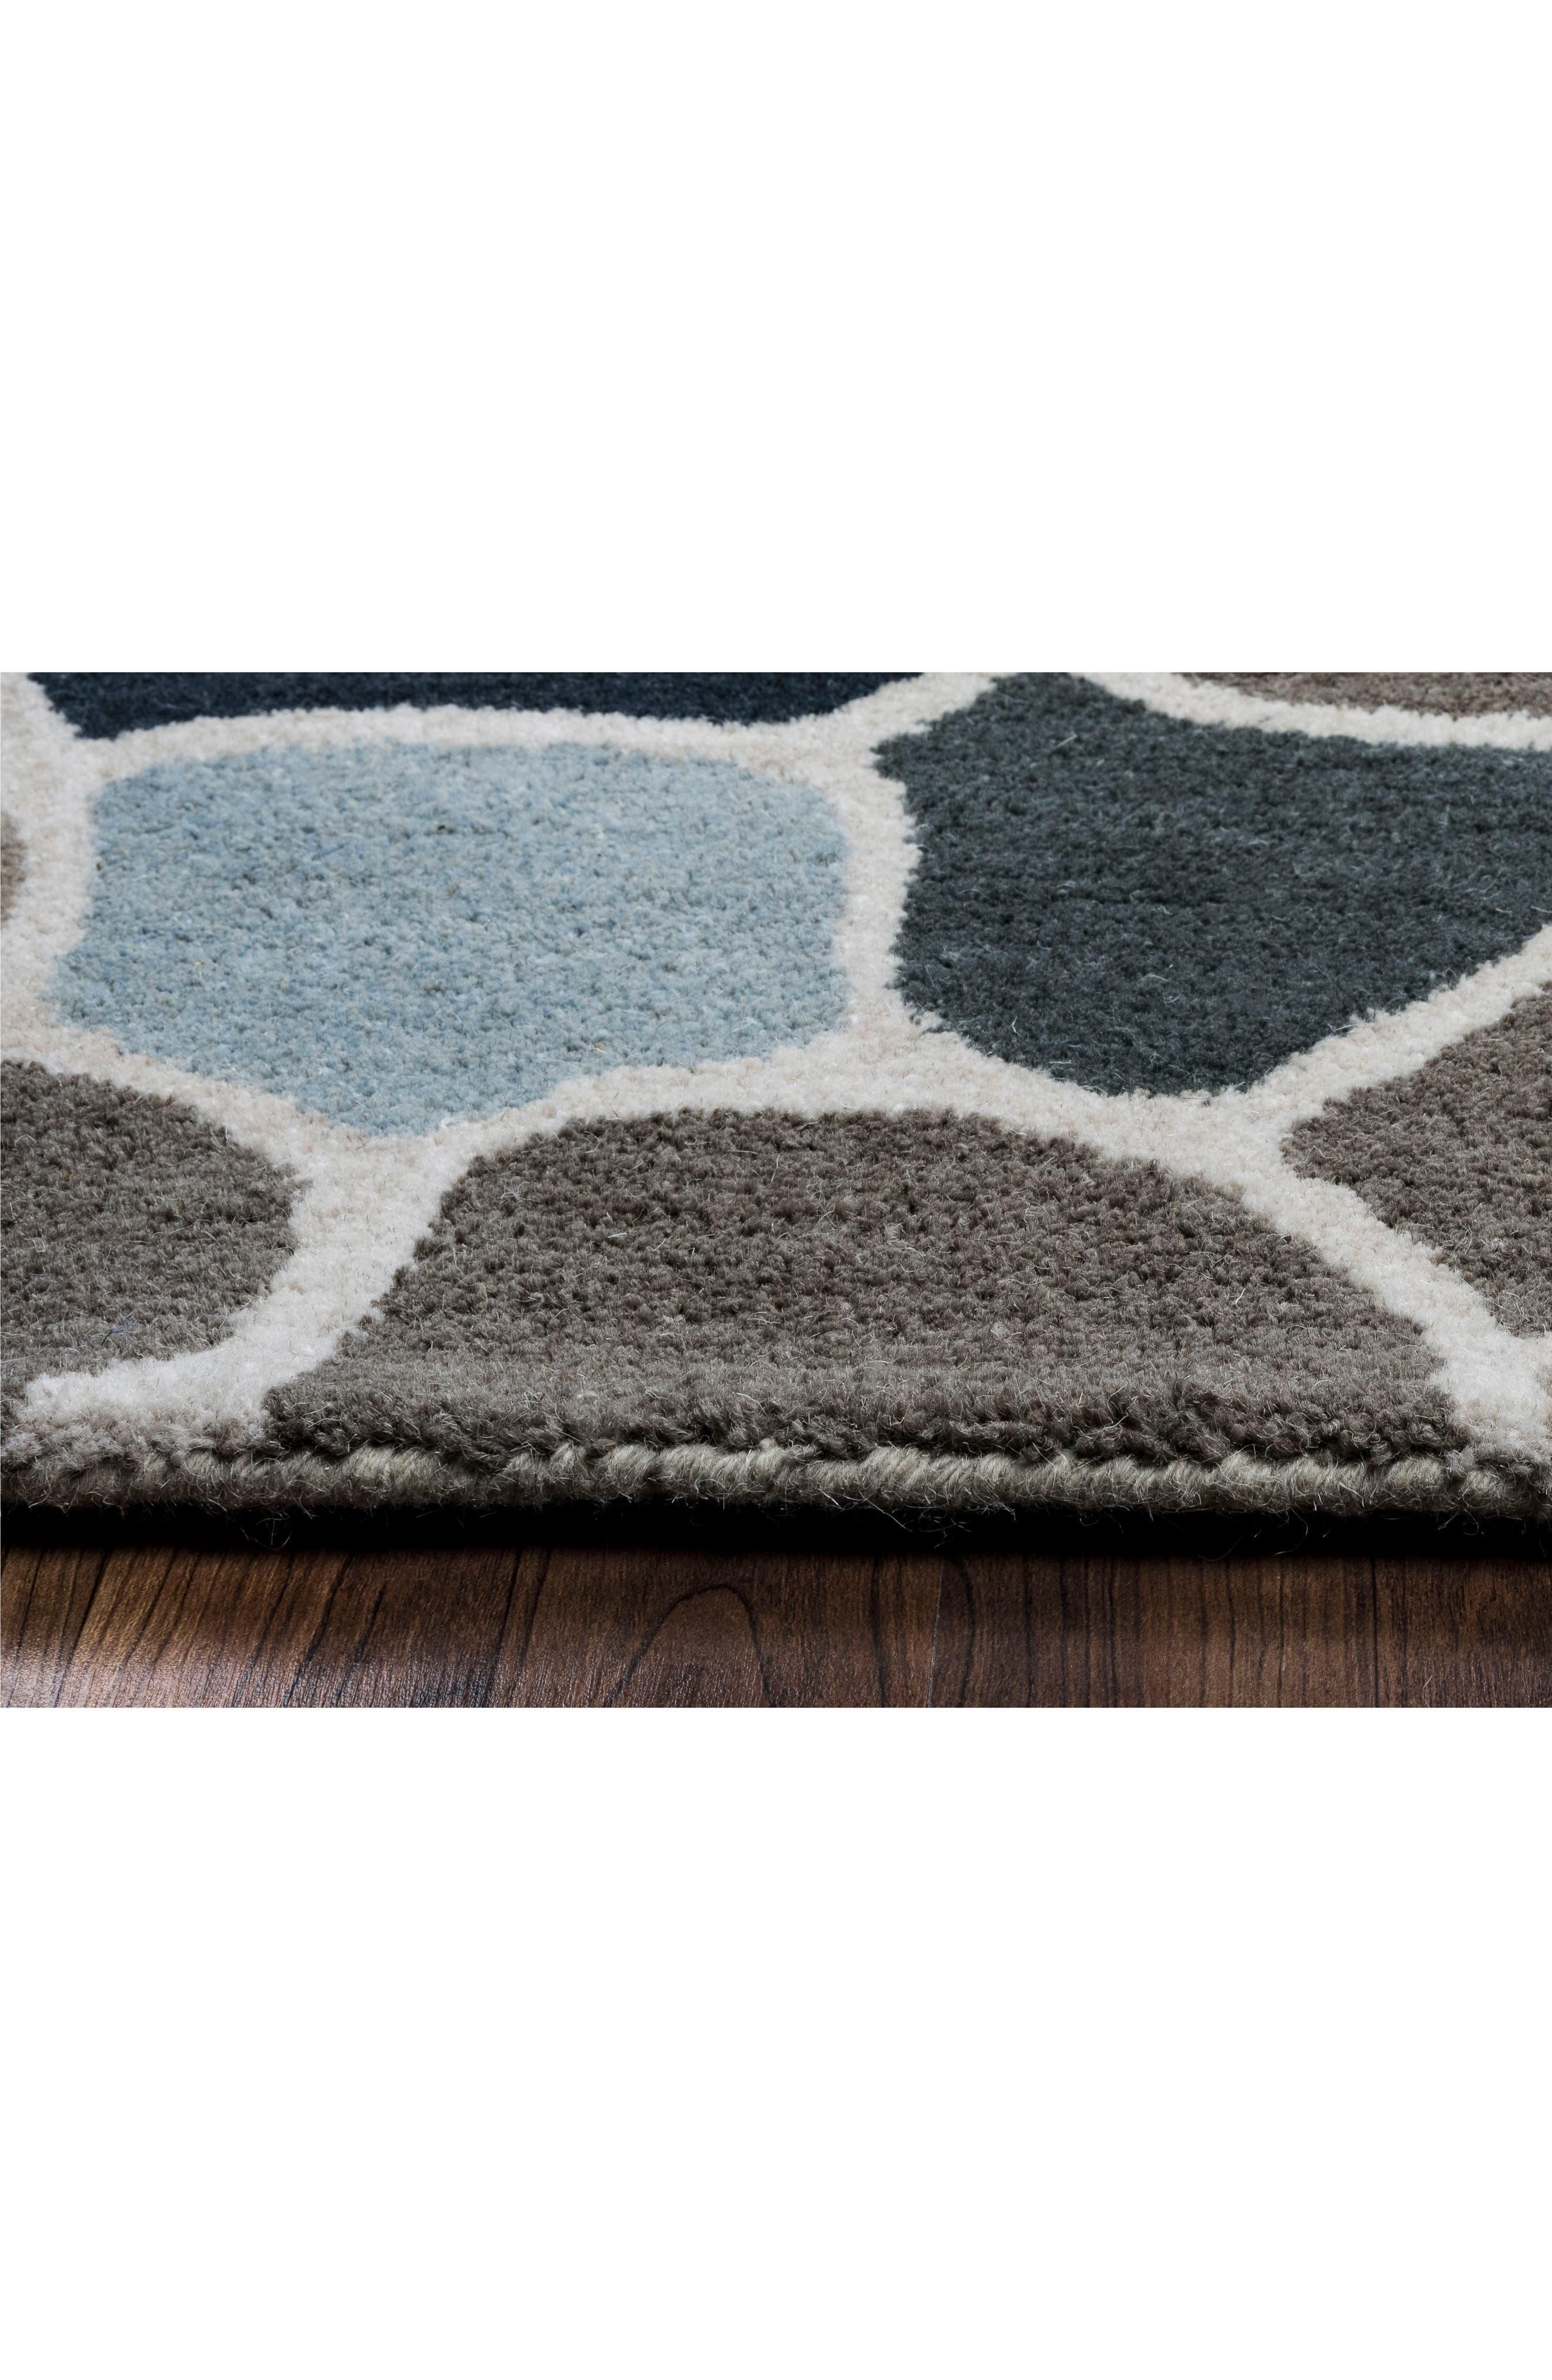 Cobble Geo Hand Tufted Wool Area Rug,                             Alternate thumbnail 4, color,                             020